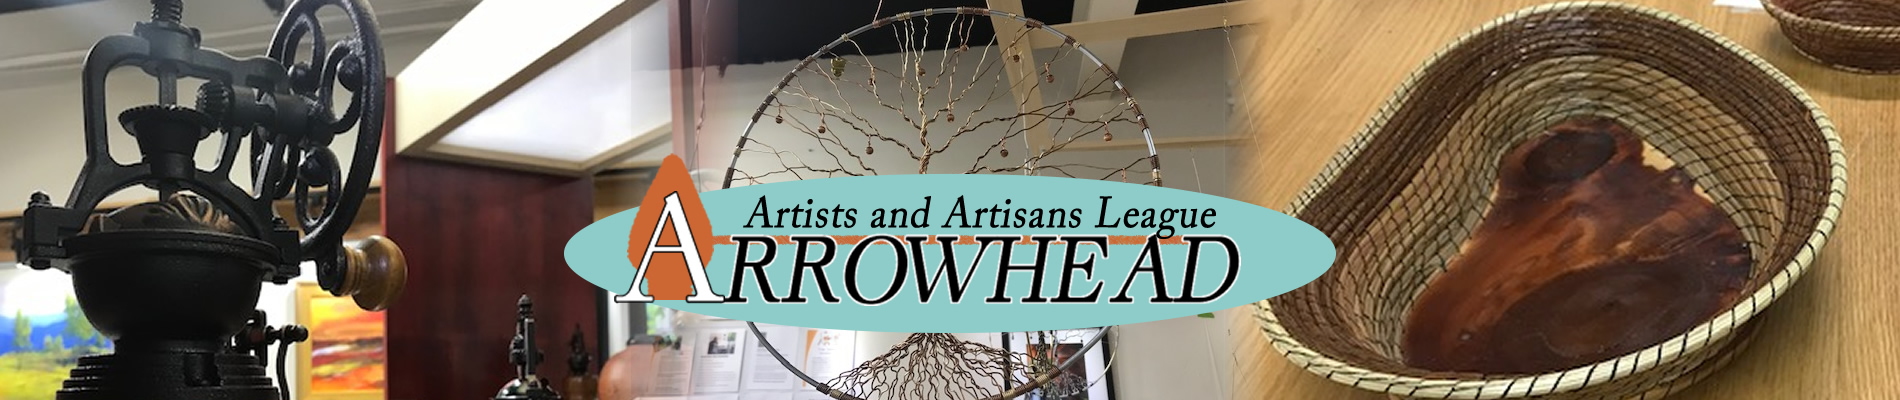 Arrowhead Art Artisans League